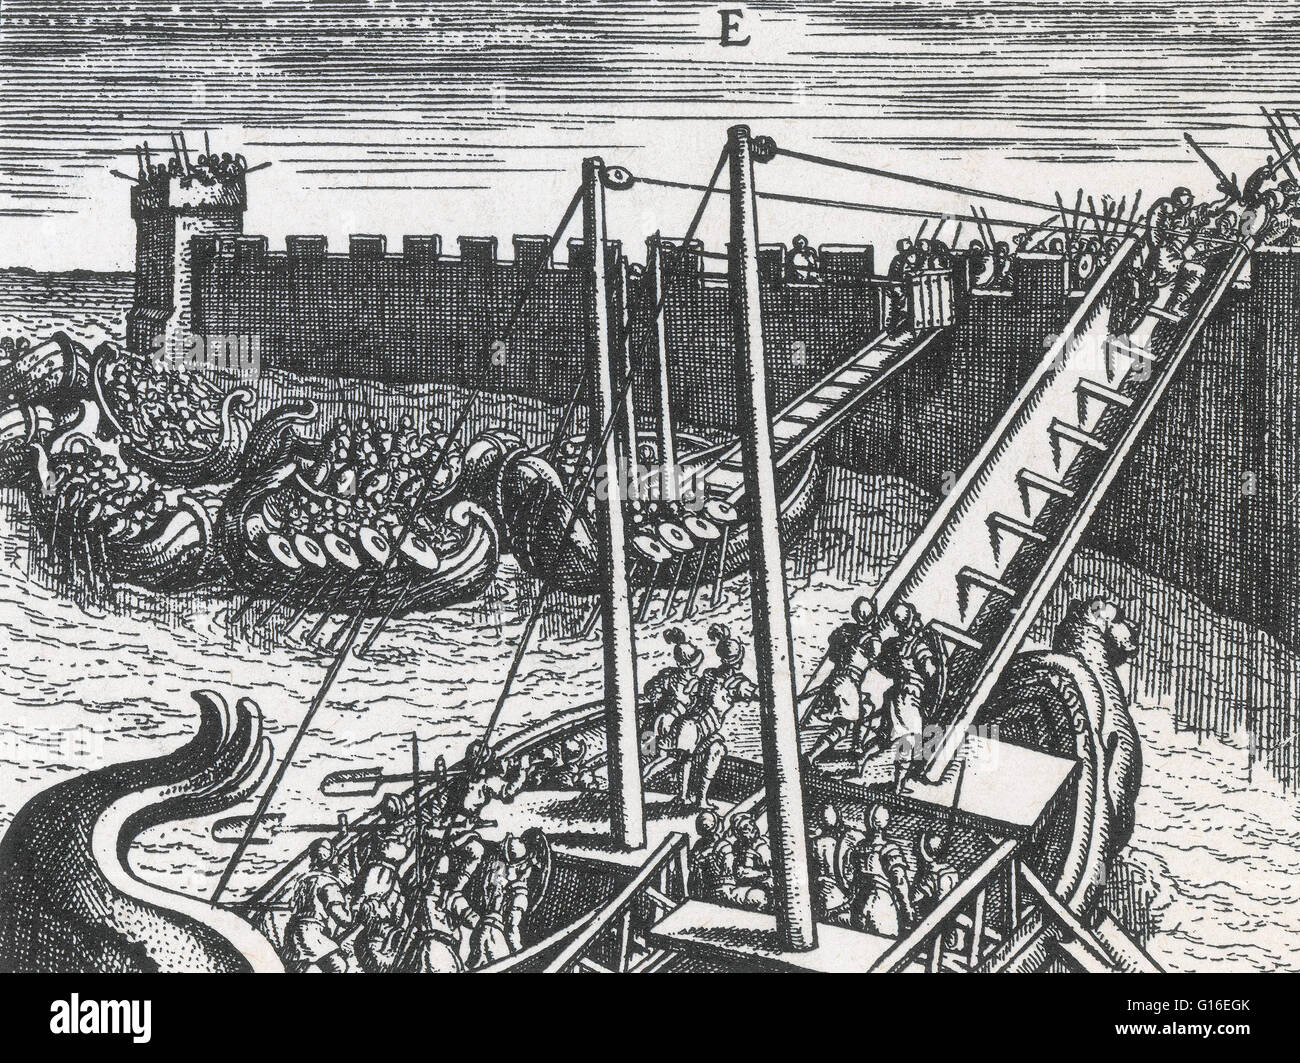 Roman soldiers scaling the walls of a fortress using ladders mounted on boats. Image taken from 'Poliorceticon - Stock Image